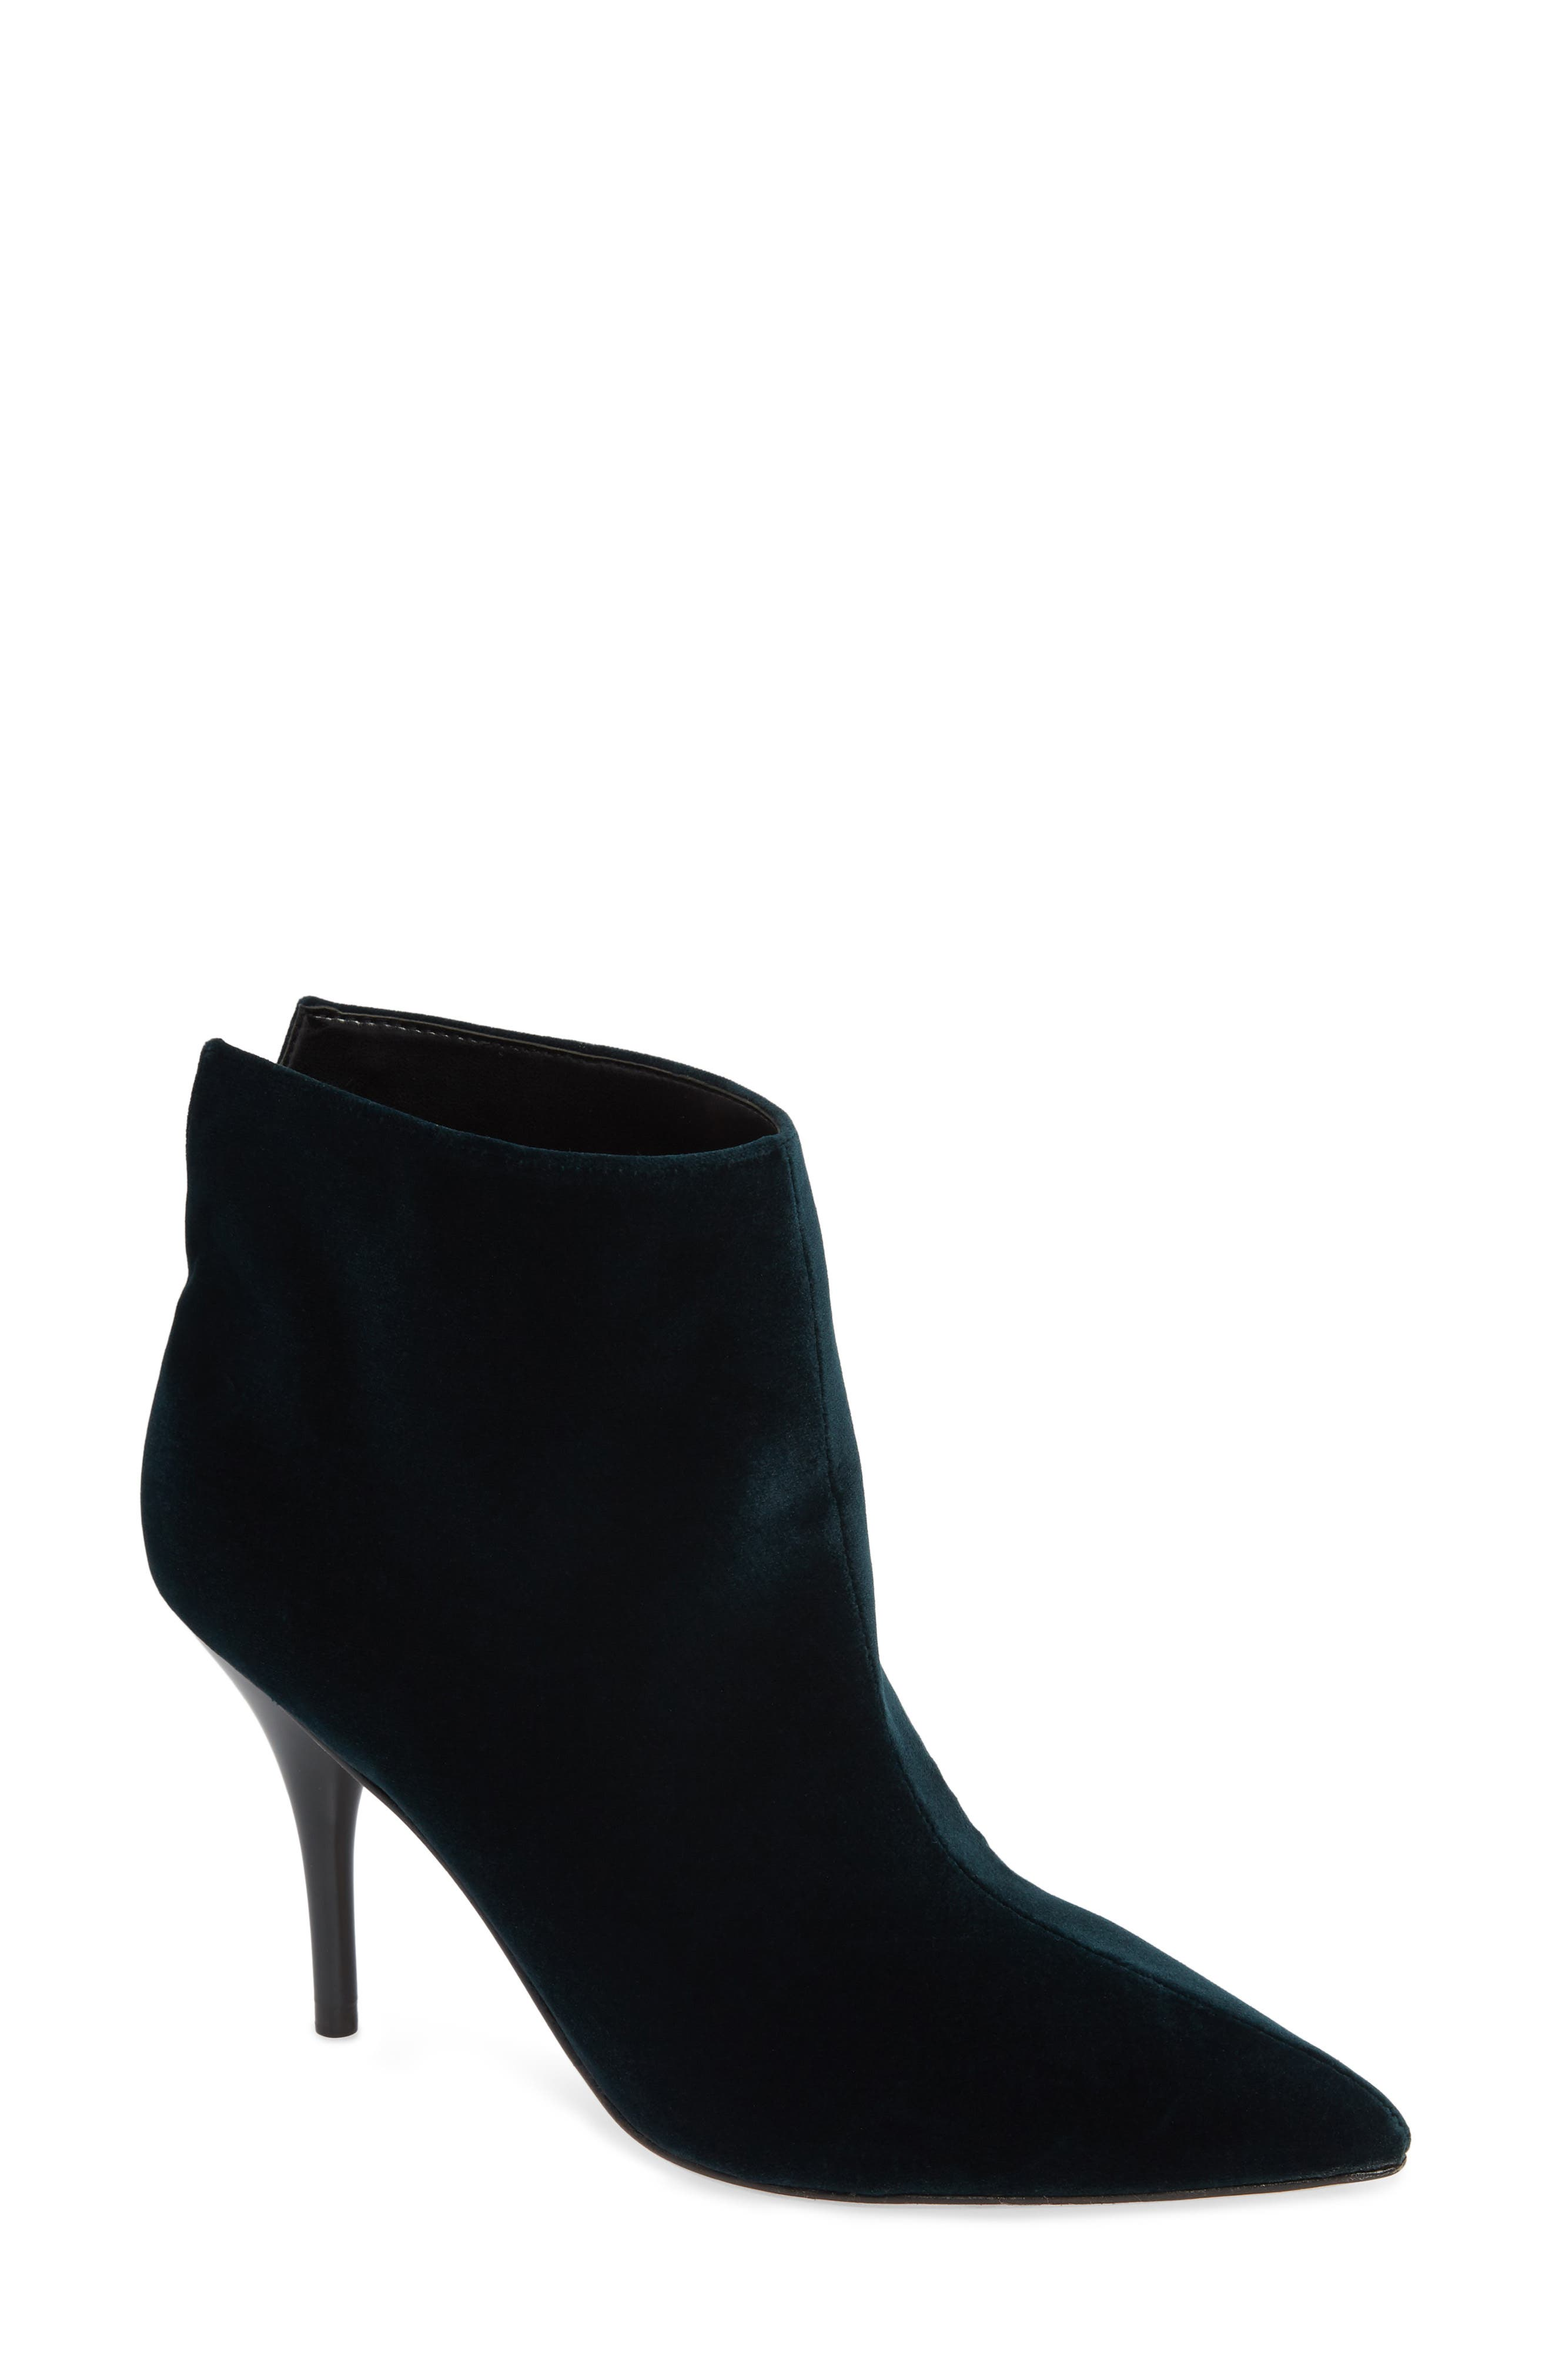 MARC FISHER LTD Fenet Pointy Toe Bootie, Main, color, SPRUCE FABRIC